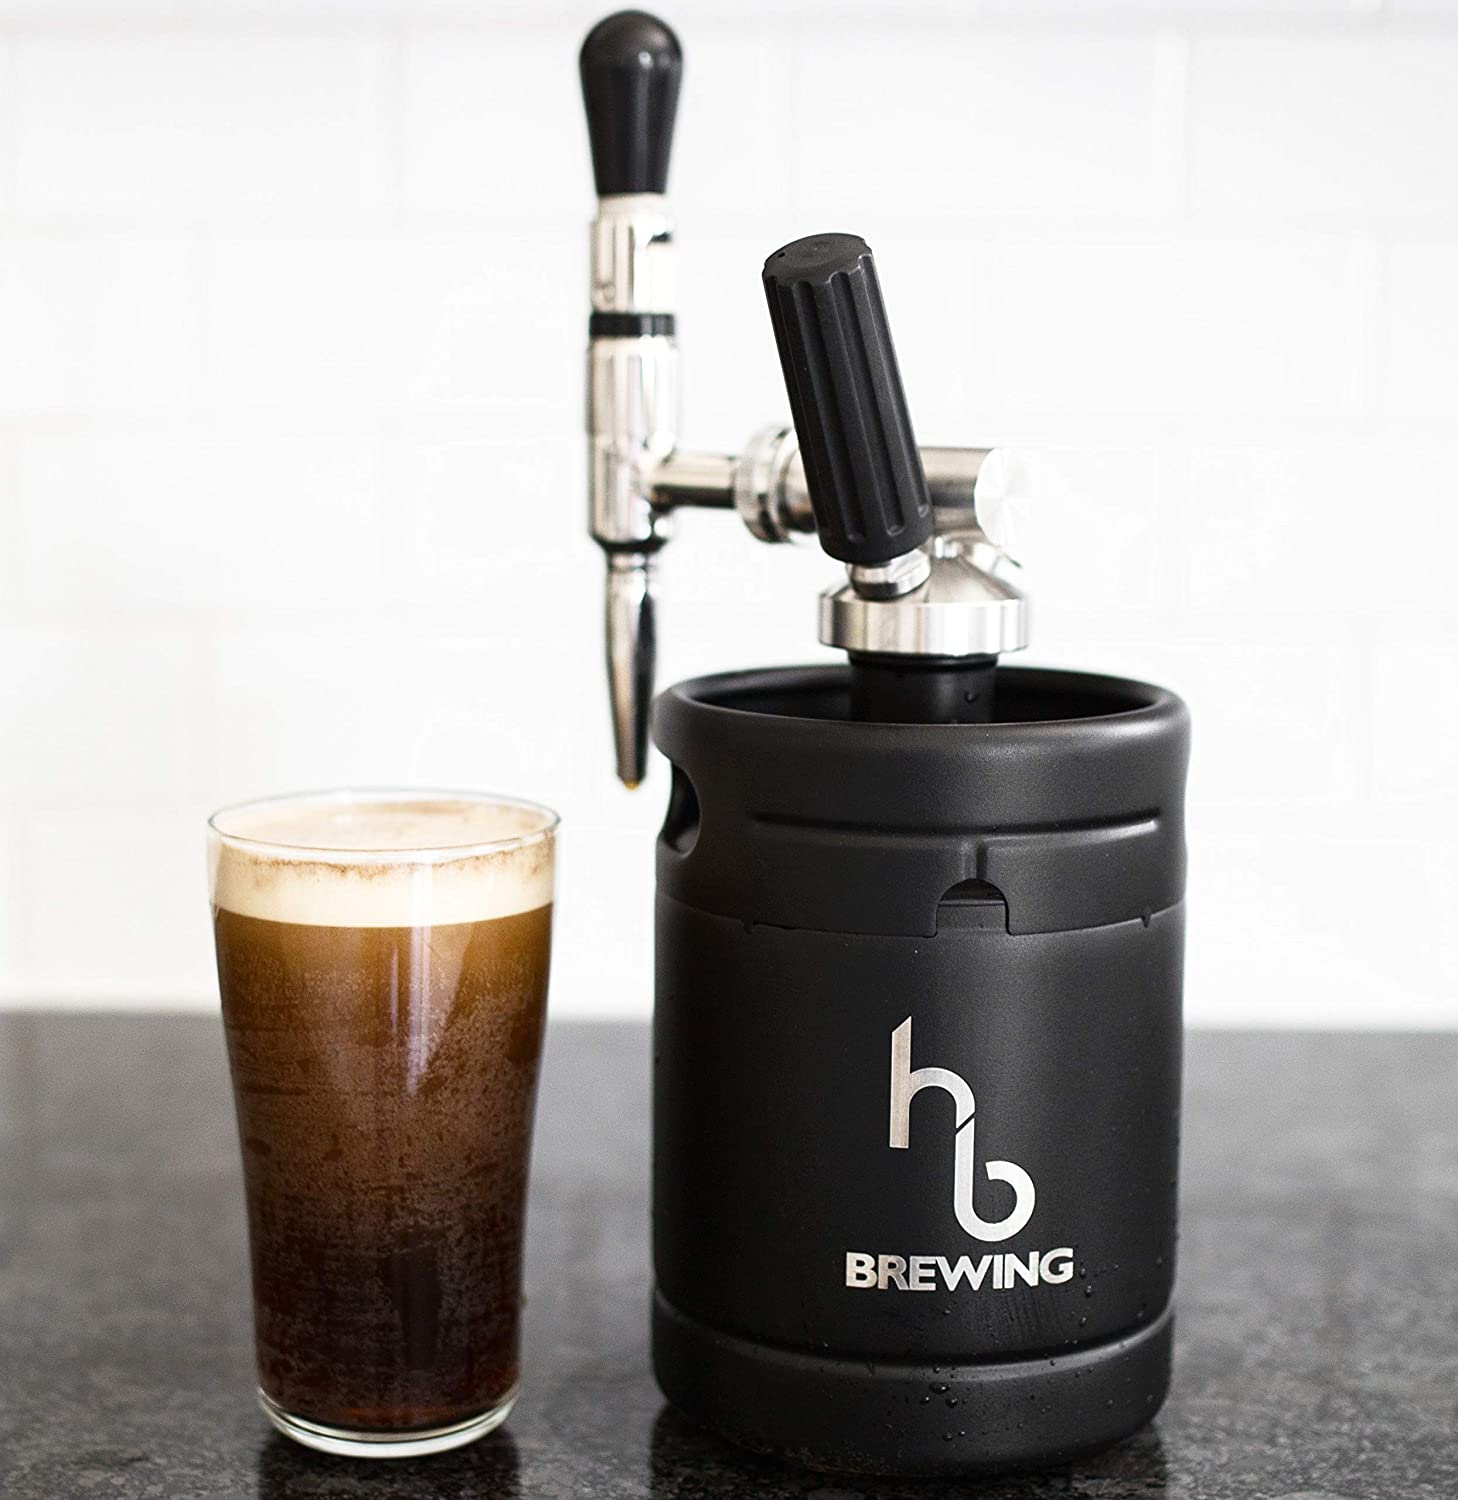 Nitro Cold Brew Coffee Maker Mini Keg Dispensing System – Home Brew Kit – by HB Brewing